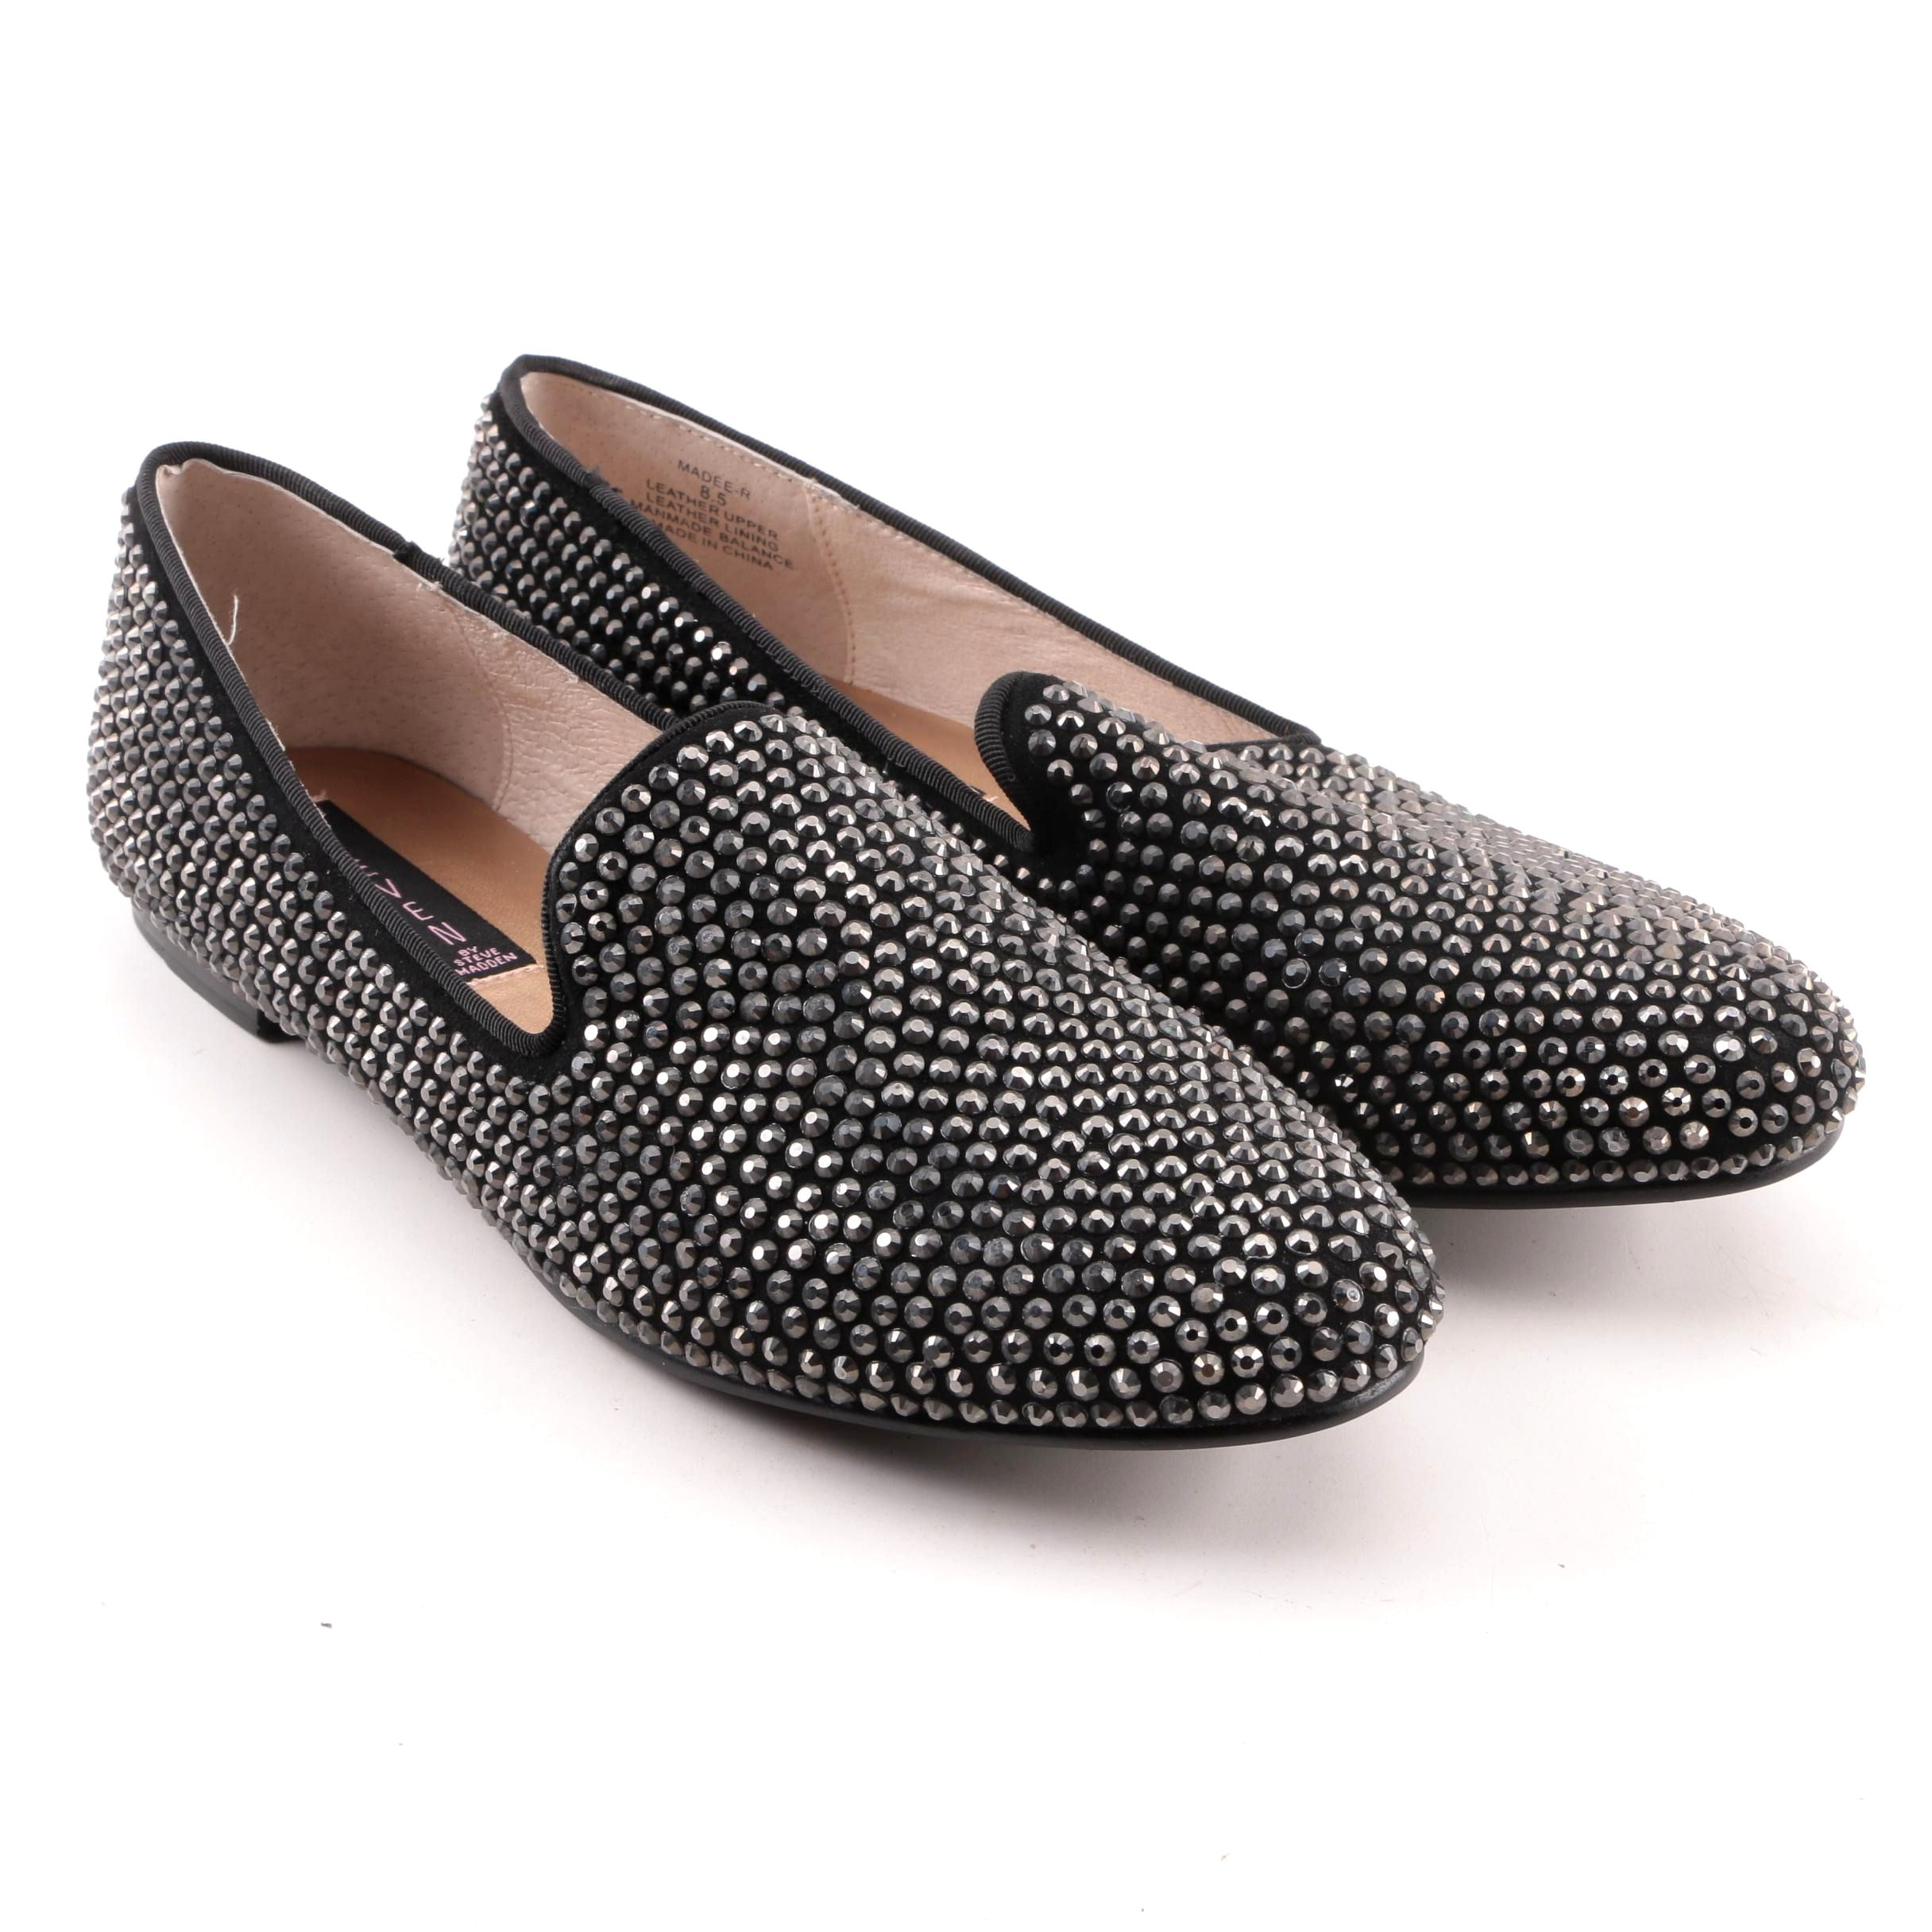 Women's STEVEN by Steve Madden Black Suede Studded Loafers